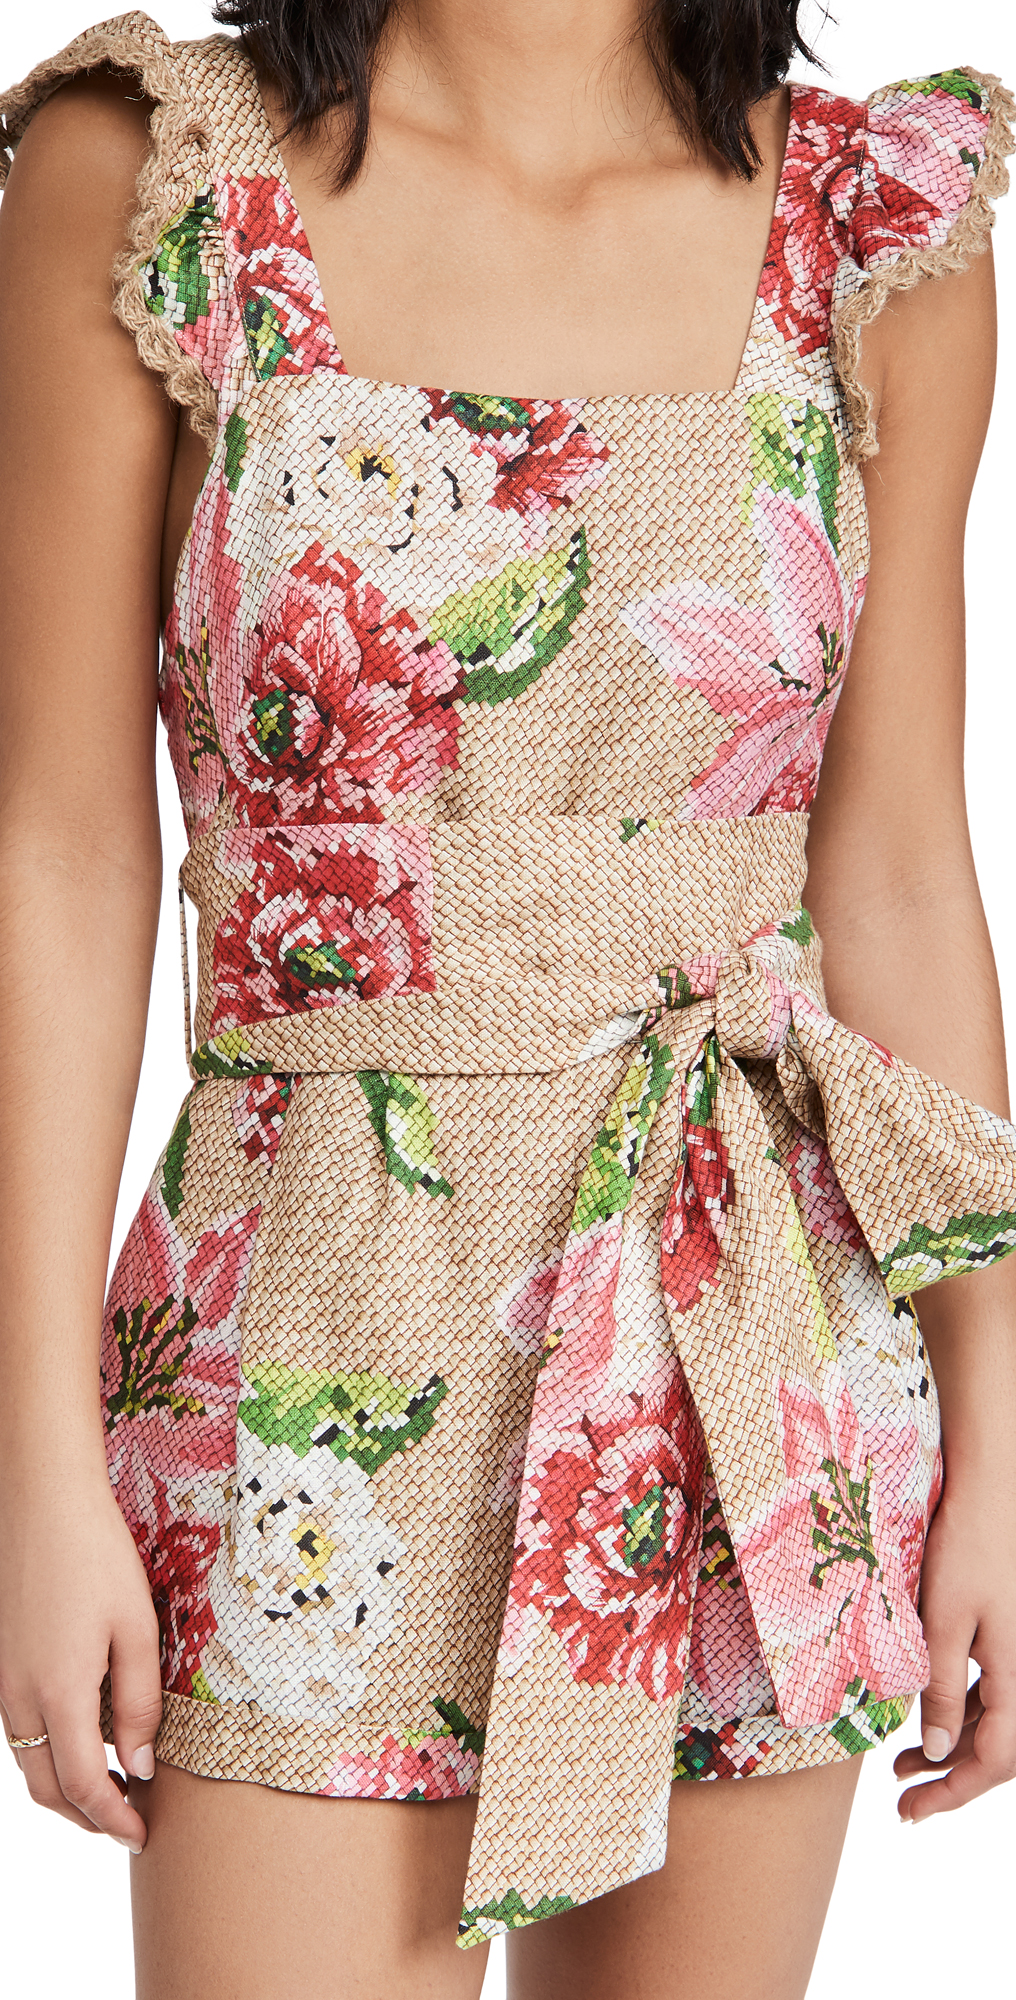 FARM Rio Woven Floral Crossed Back Frilled Romper